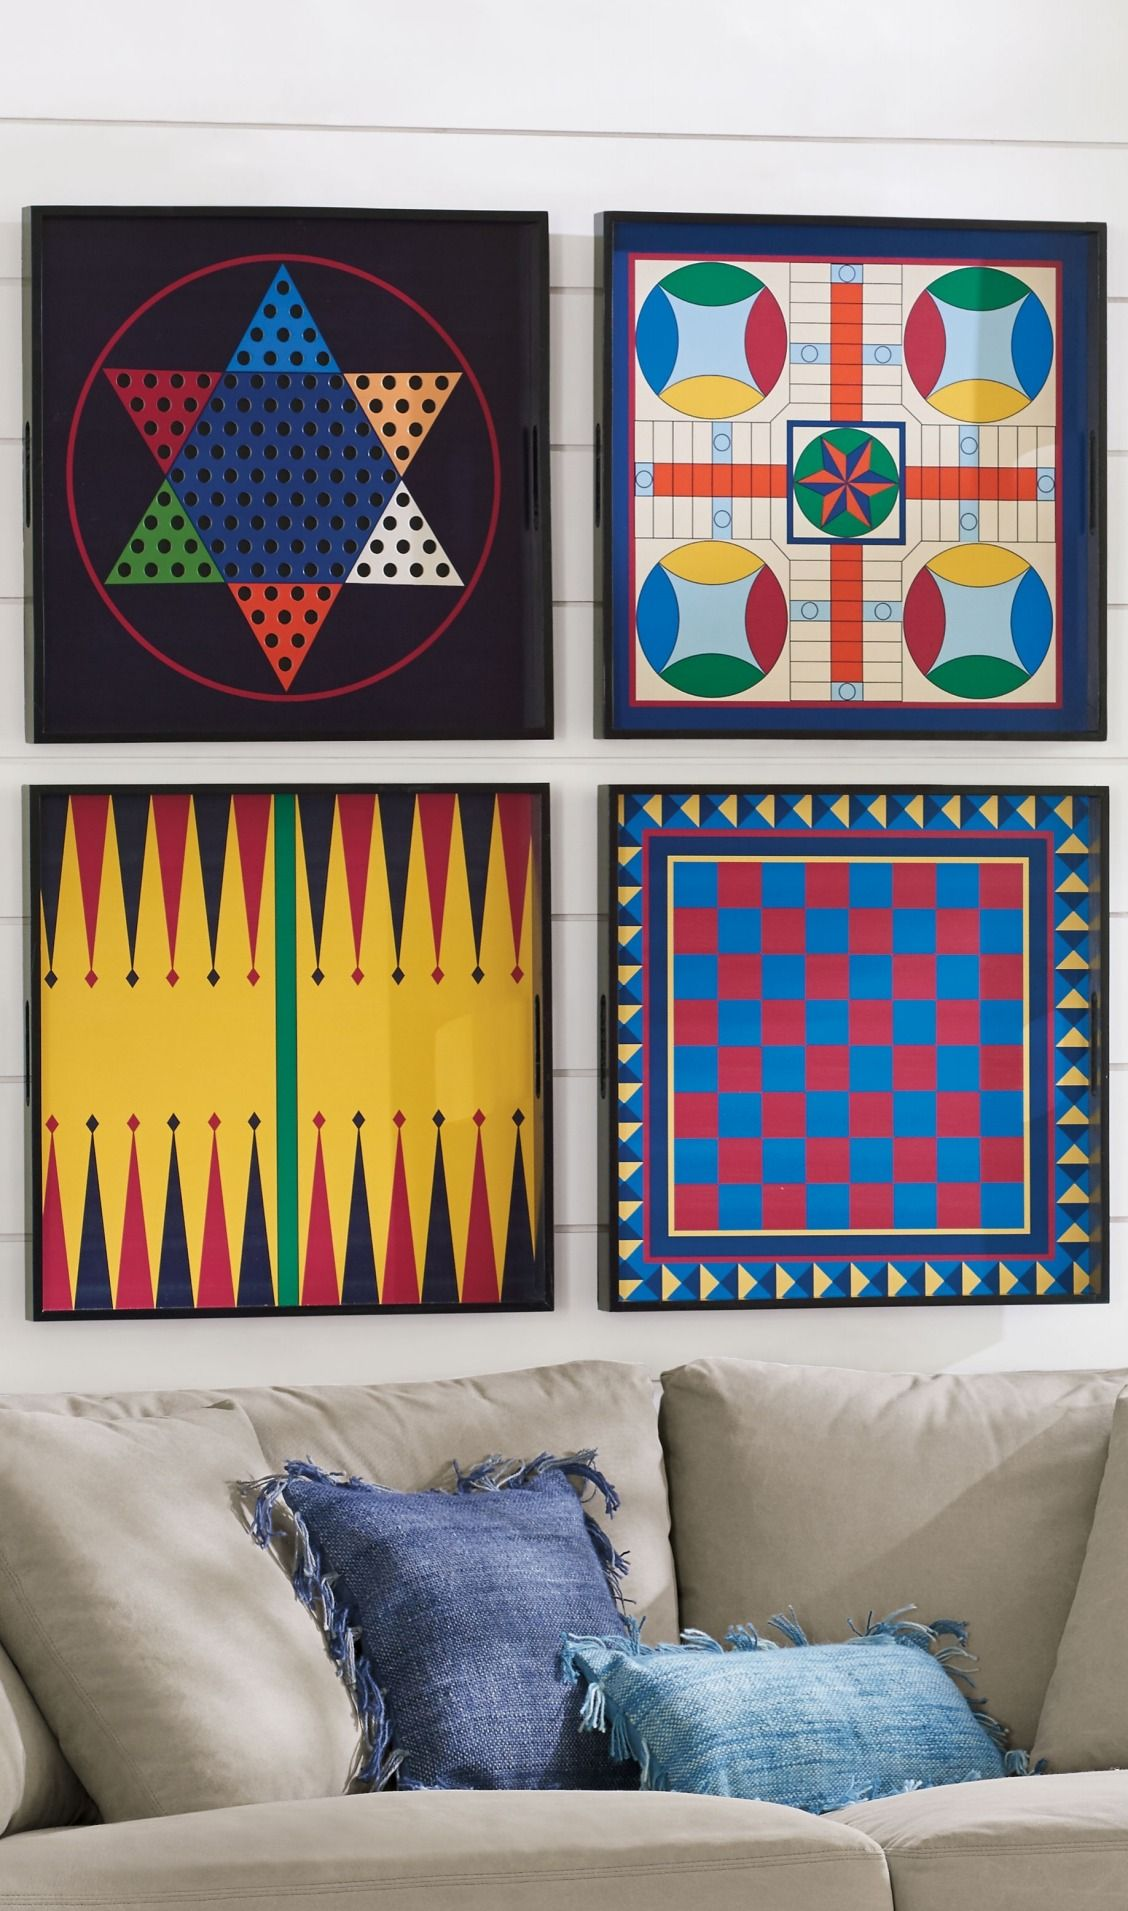 Hang Them As Graphic Art On The Wall Or Actually Play The Iconic